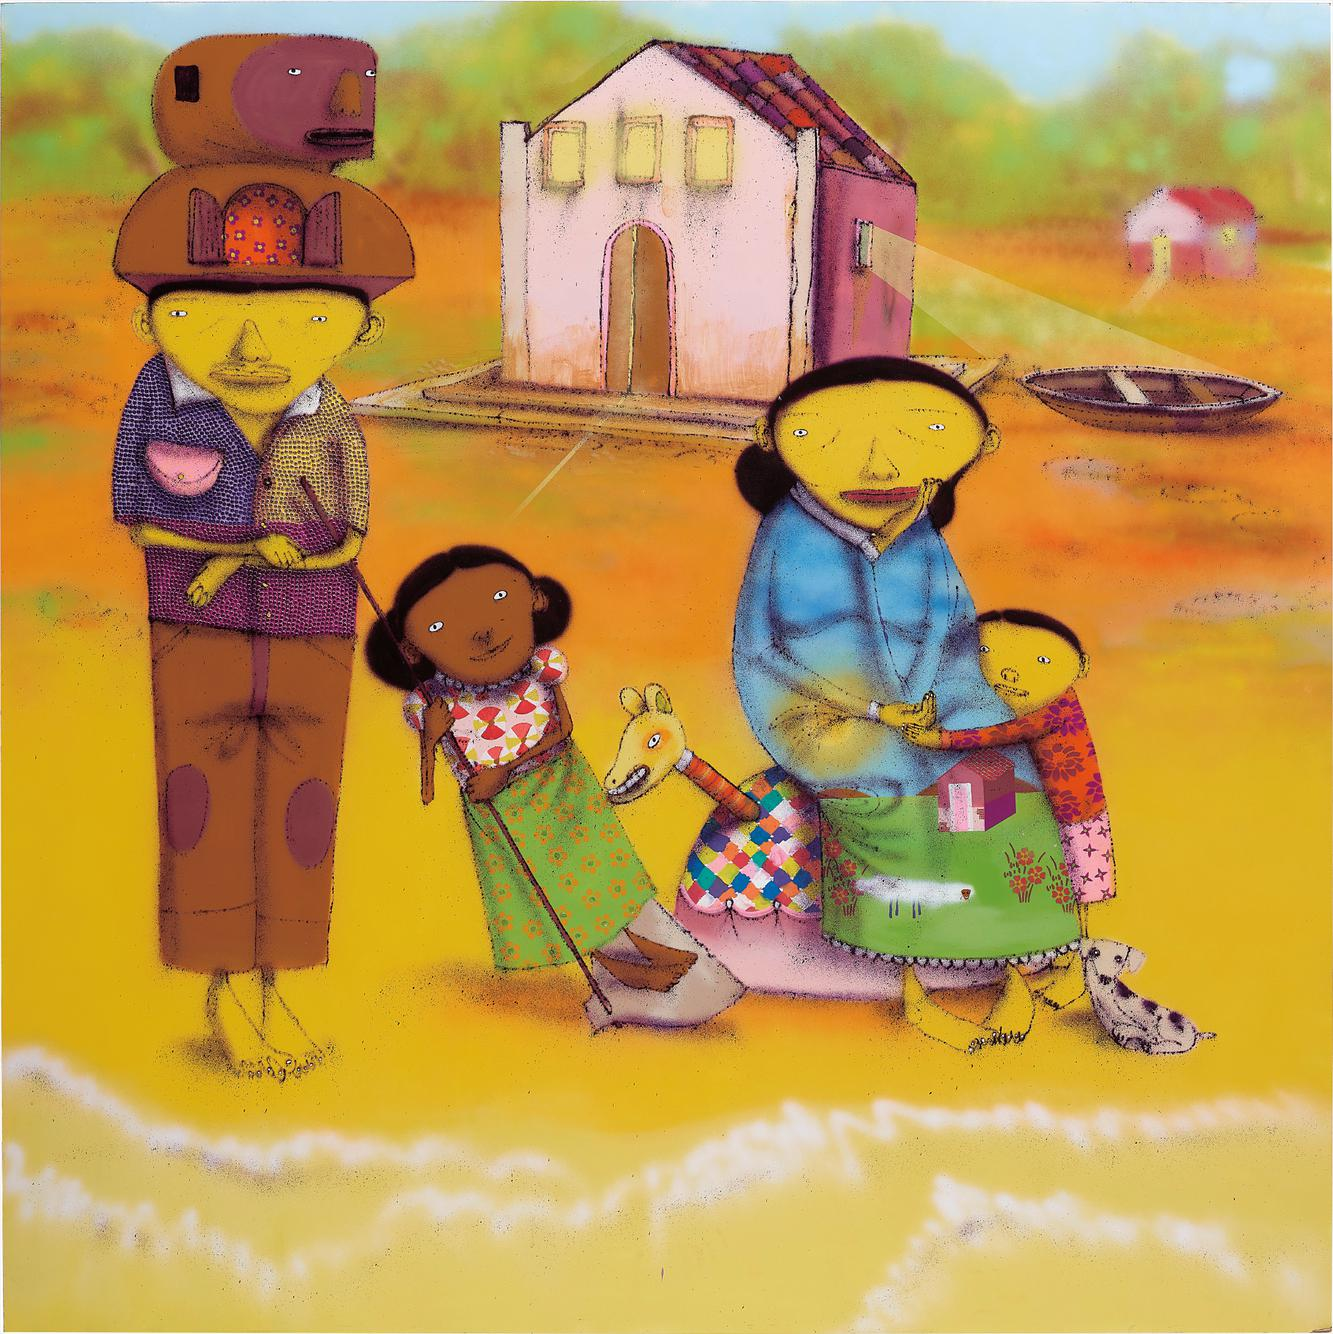 Os Gemeos-Untitled-2008